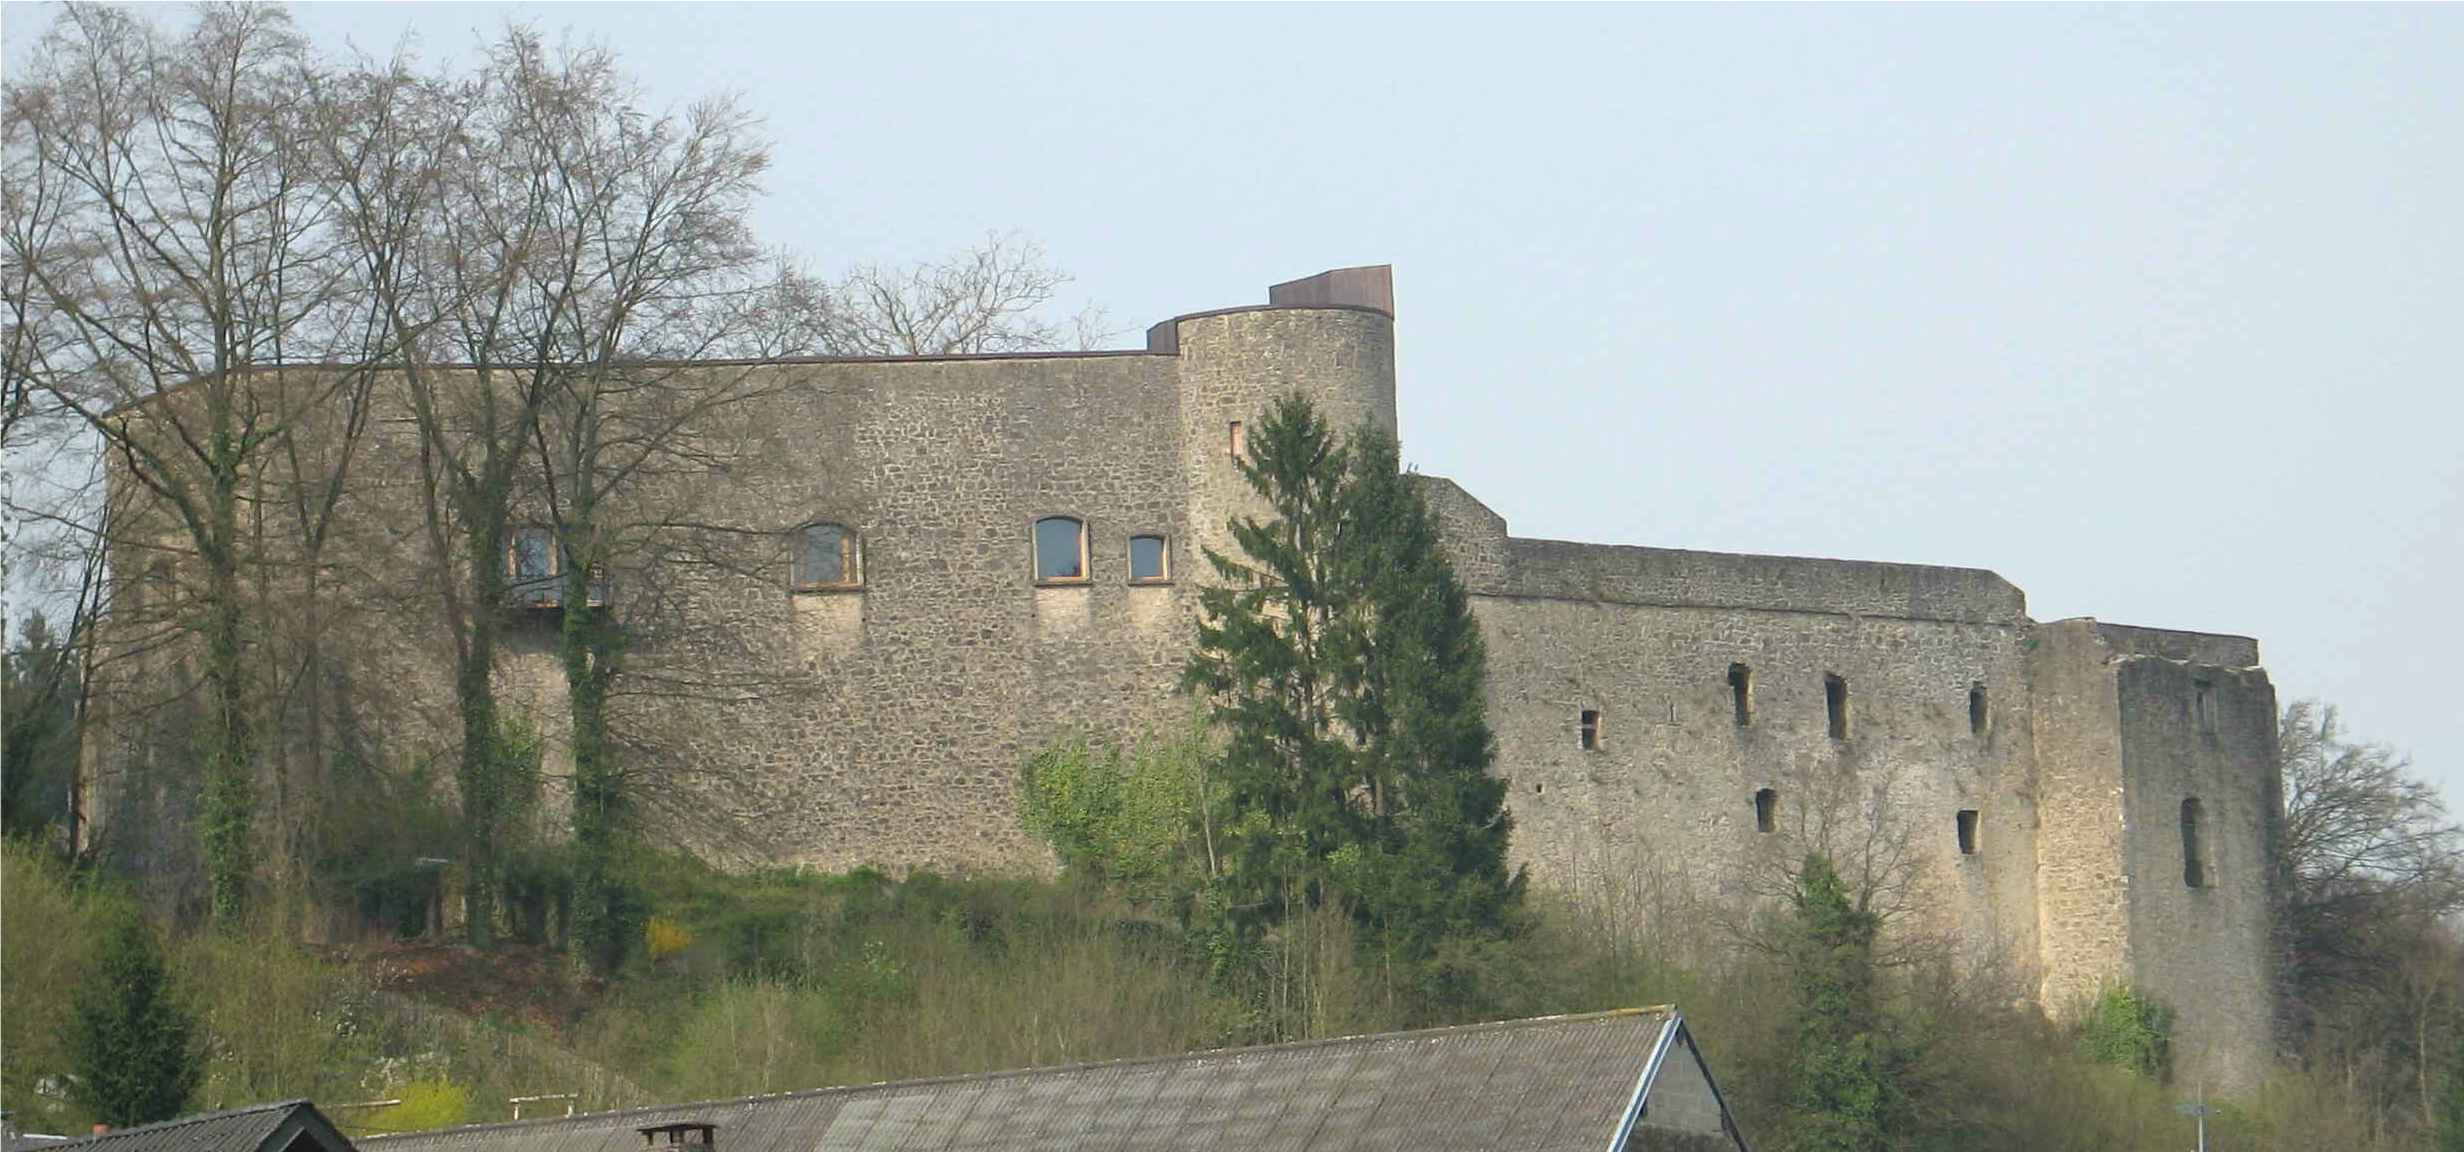 Septfontaines Castle, Luxembourg. Photo taken on April 25, 2005.